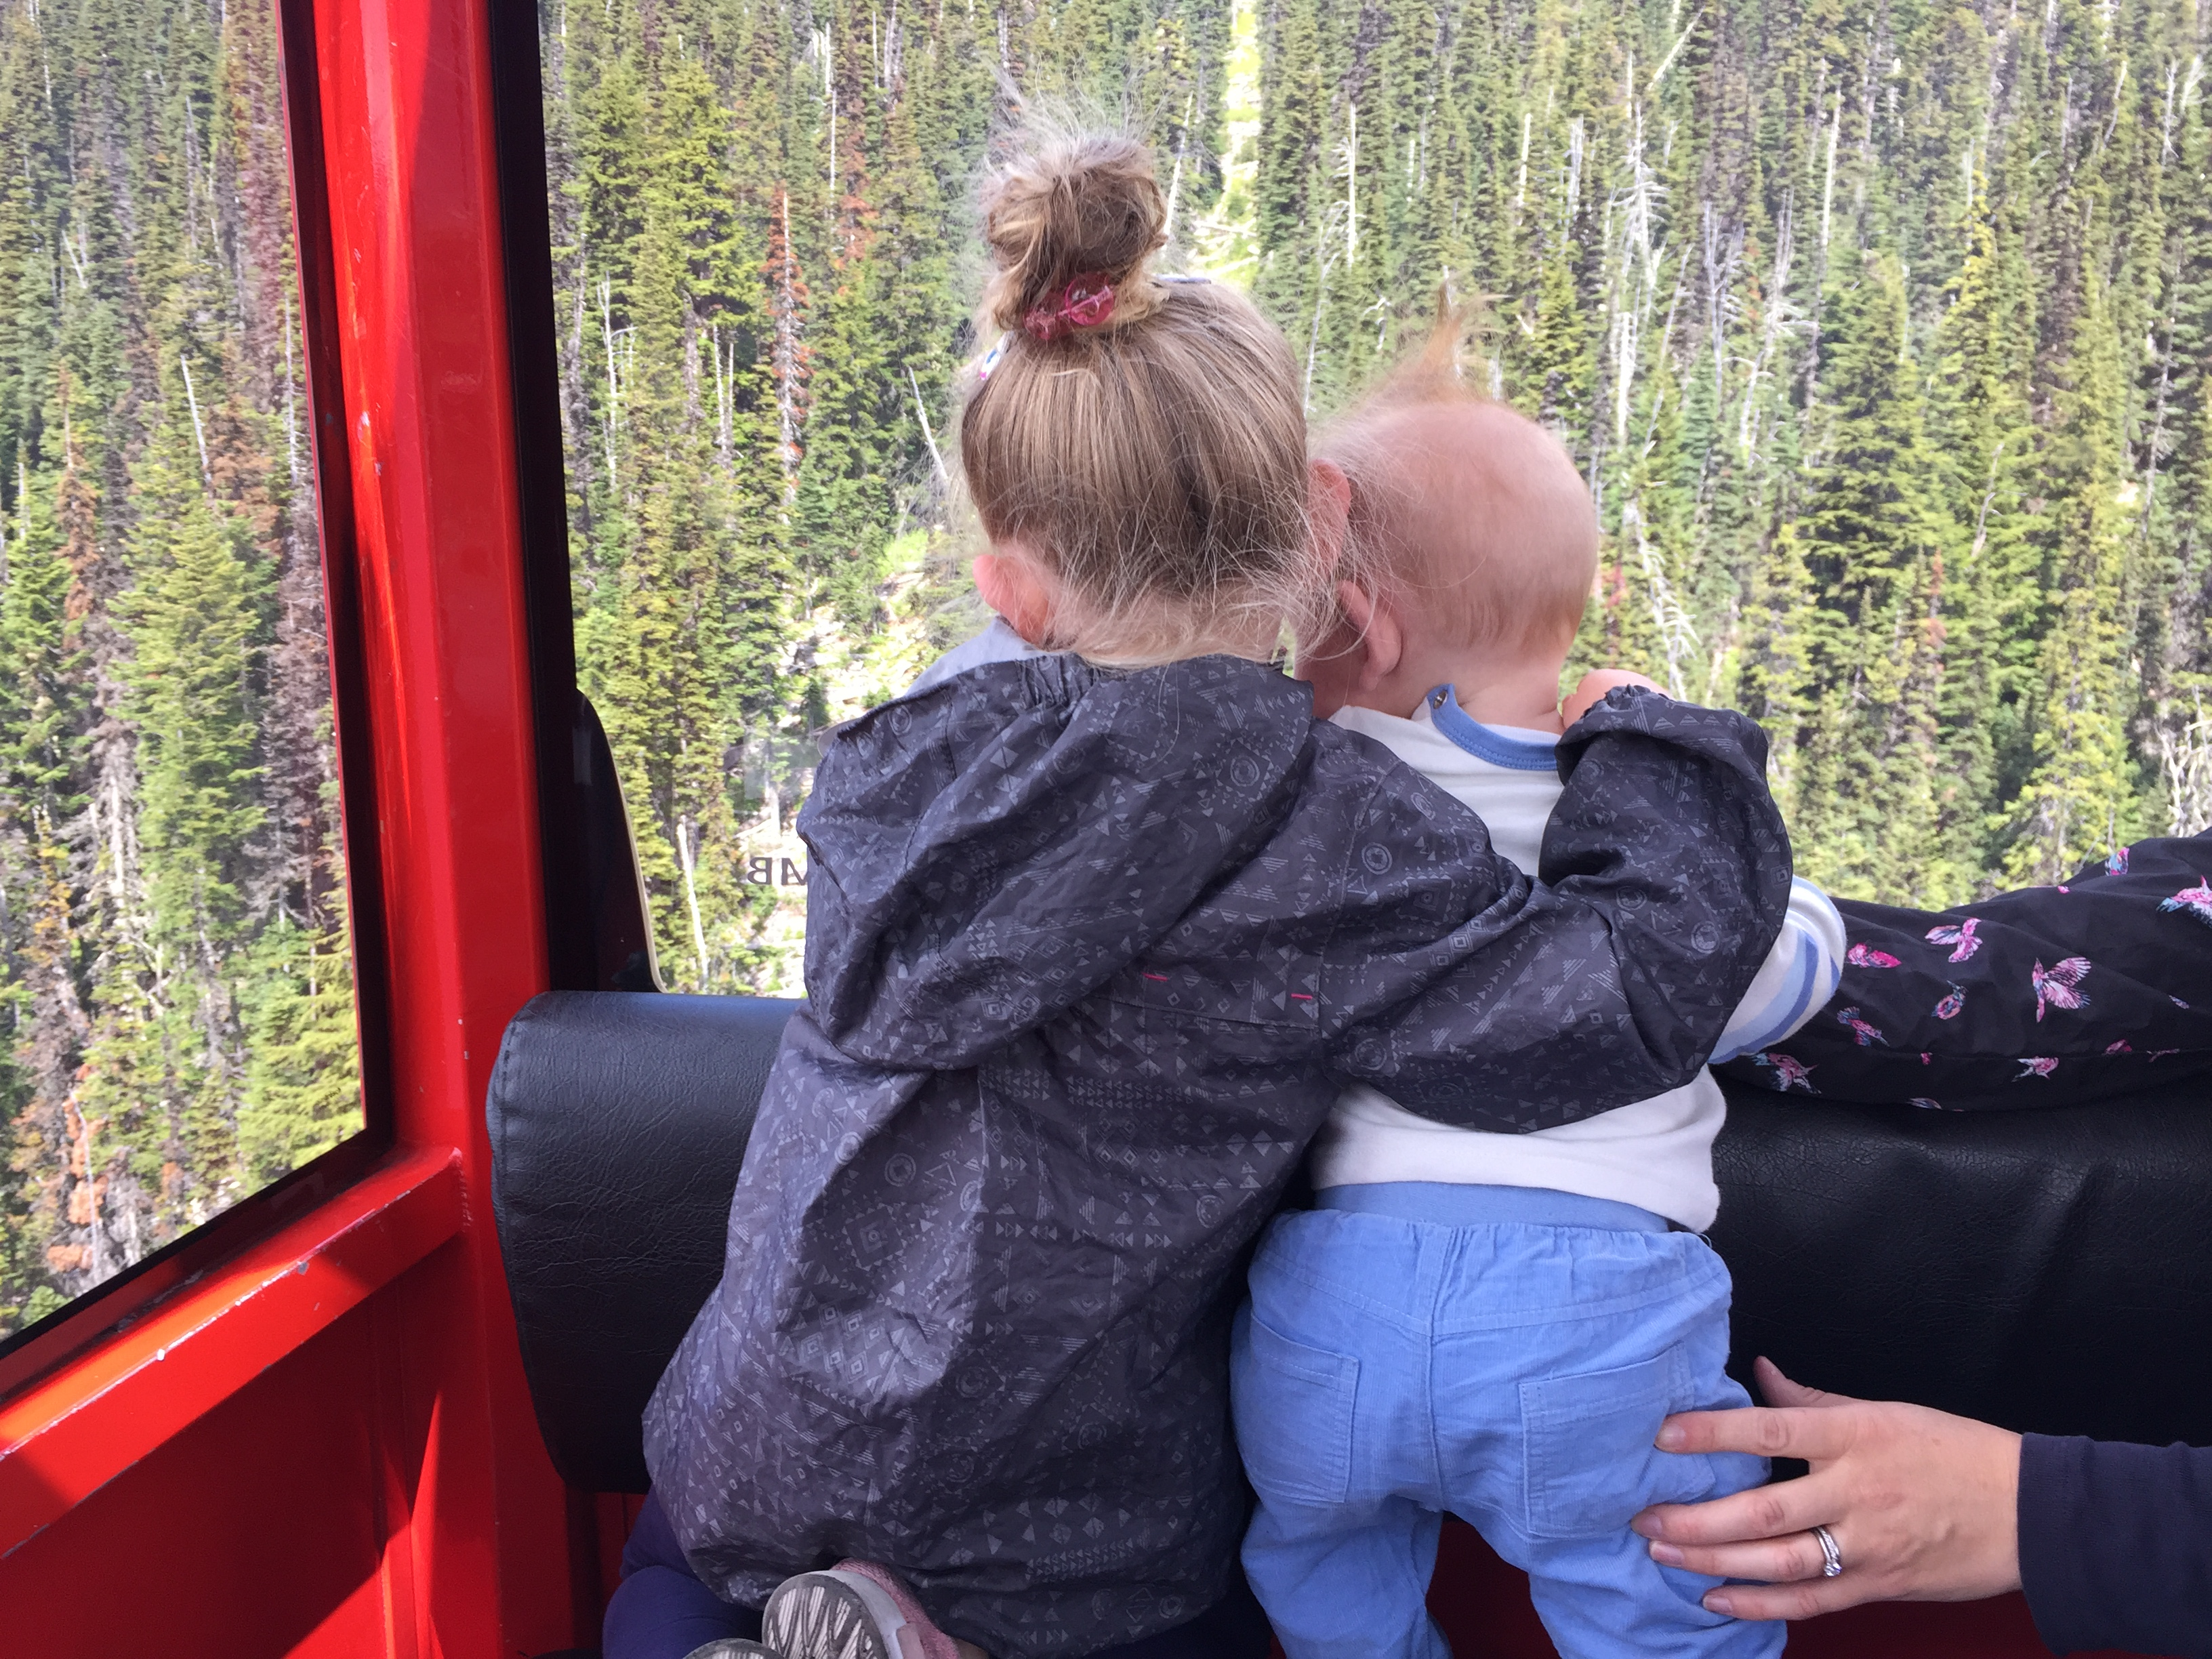 Why Write About Travelling with Children?